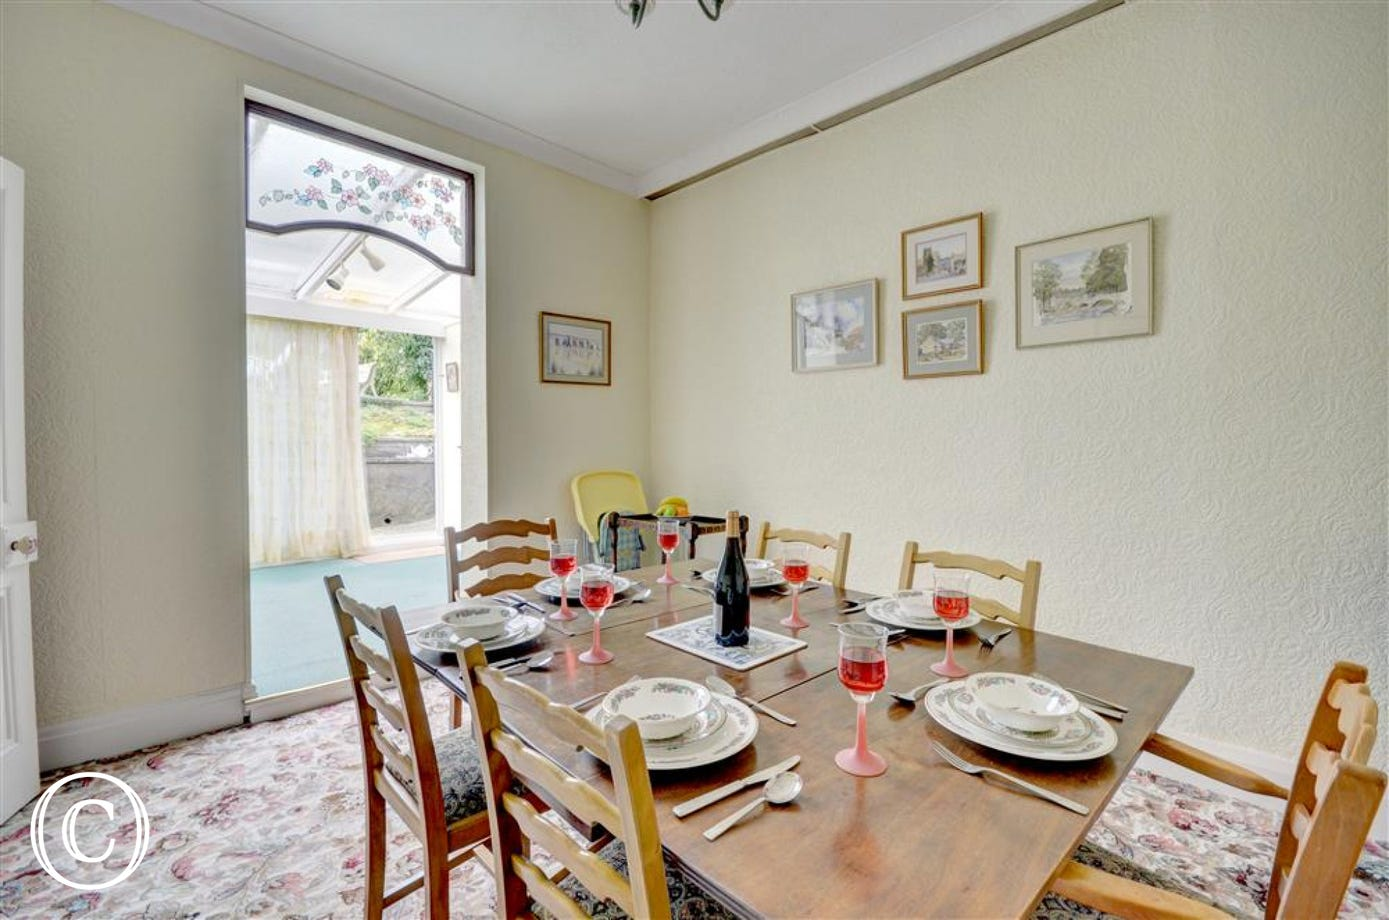 Dining Room adjoins the Utility Area with the access to the back garden.